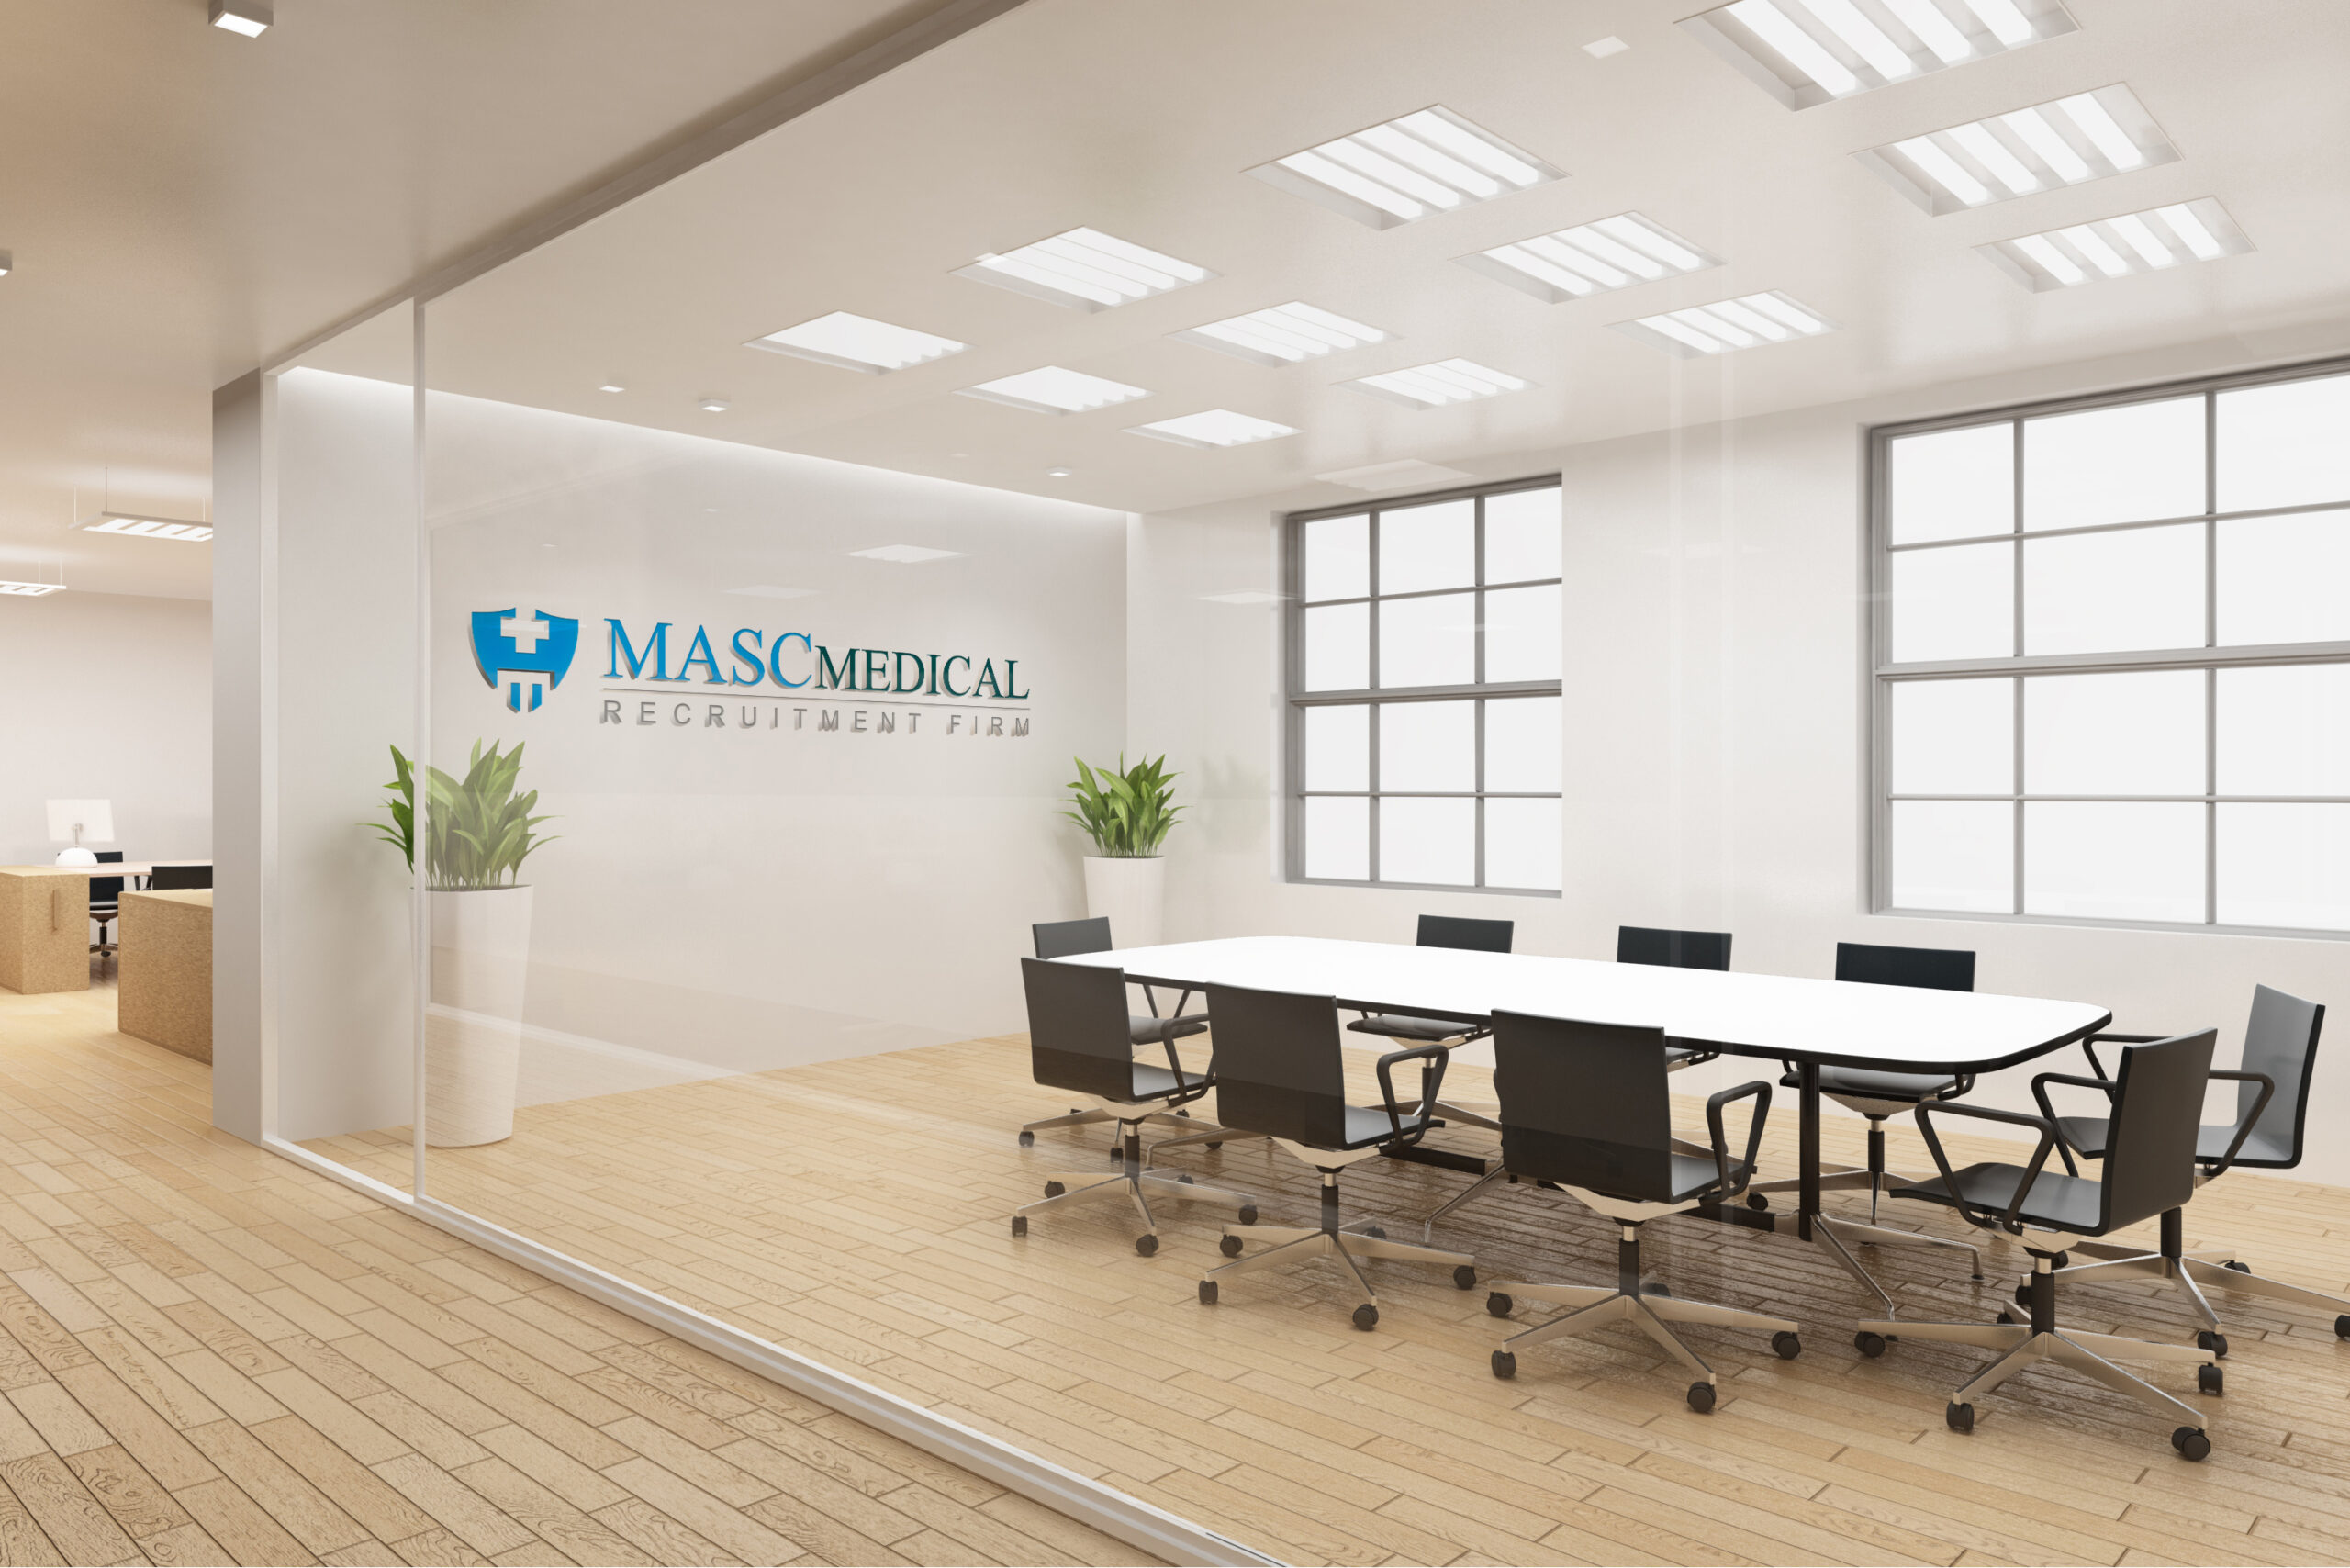 MASC Medical Announces The Opening of New Houston Office To Accommodate Continued Growth